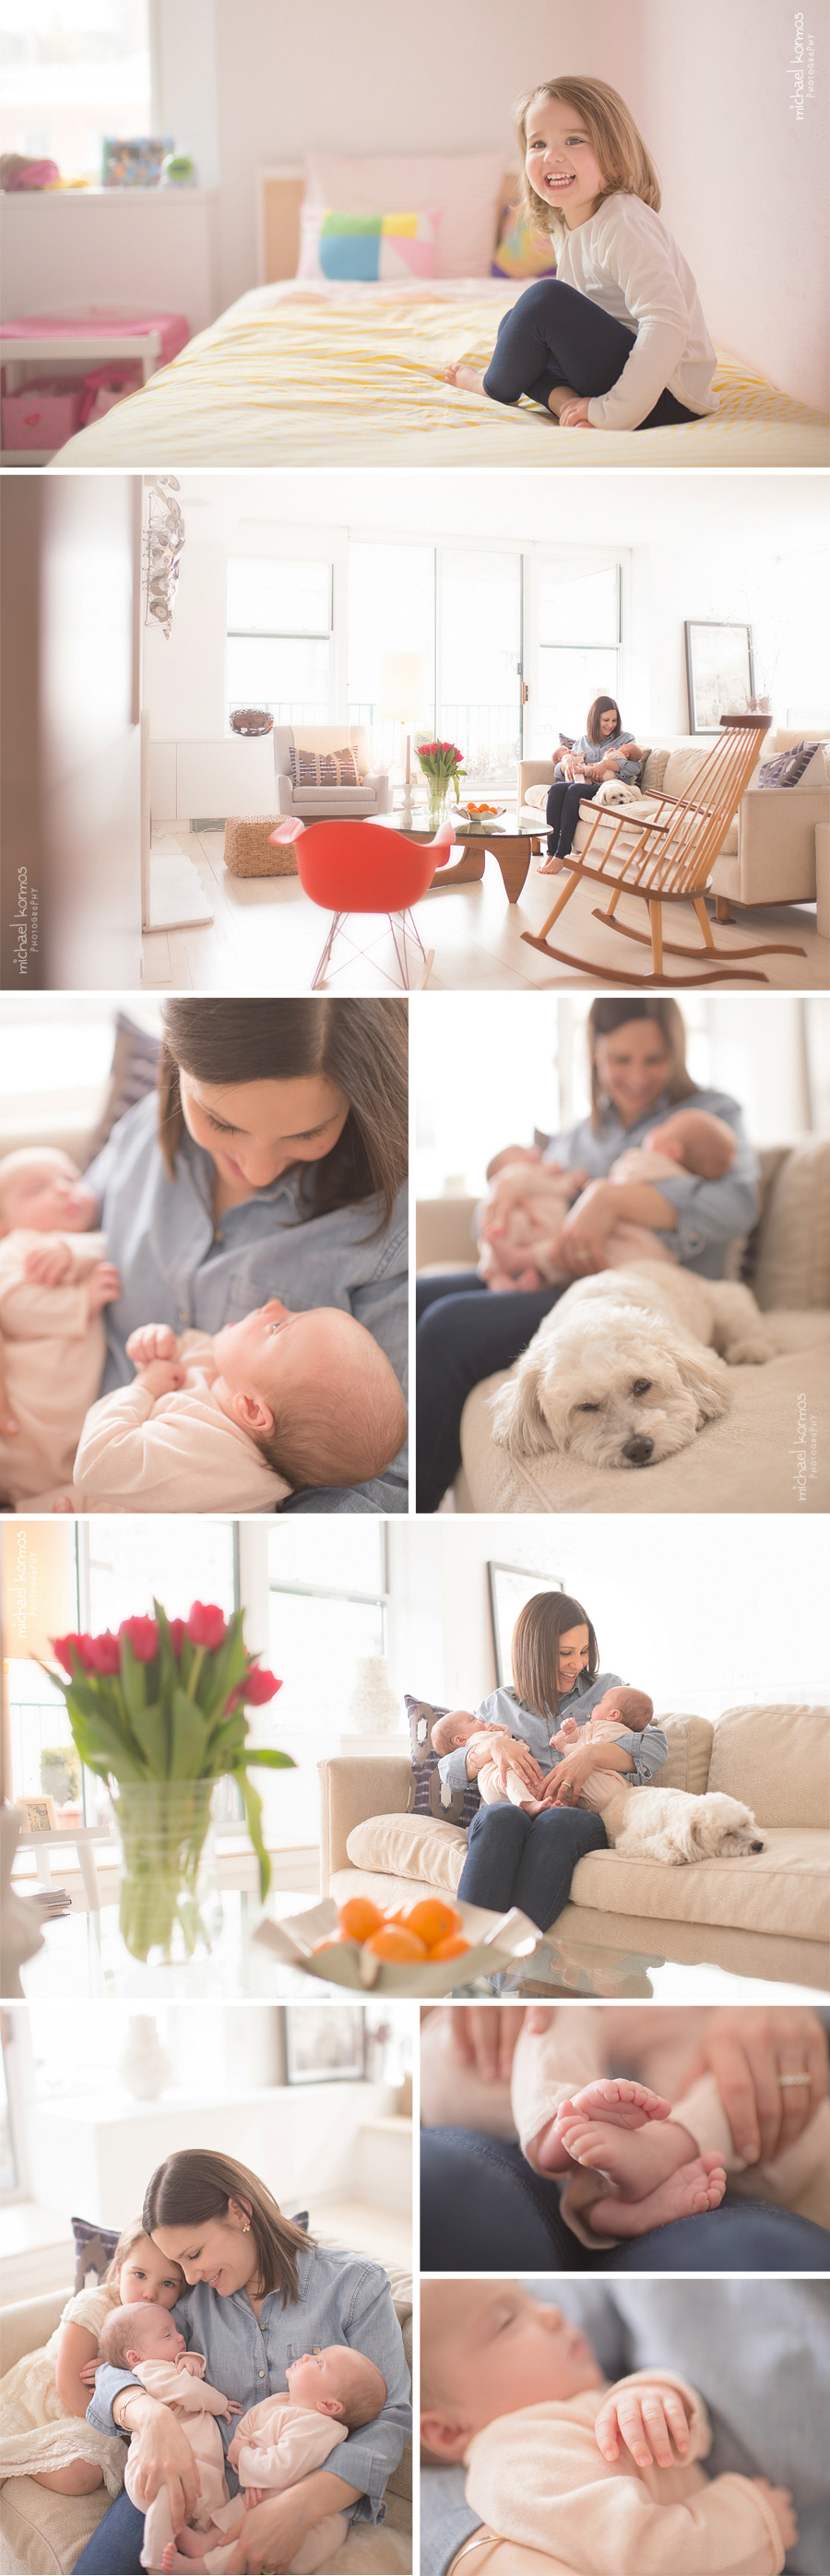 nyc lifestyle family photographer captures the happiness and pure joy of brand new babies in the home